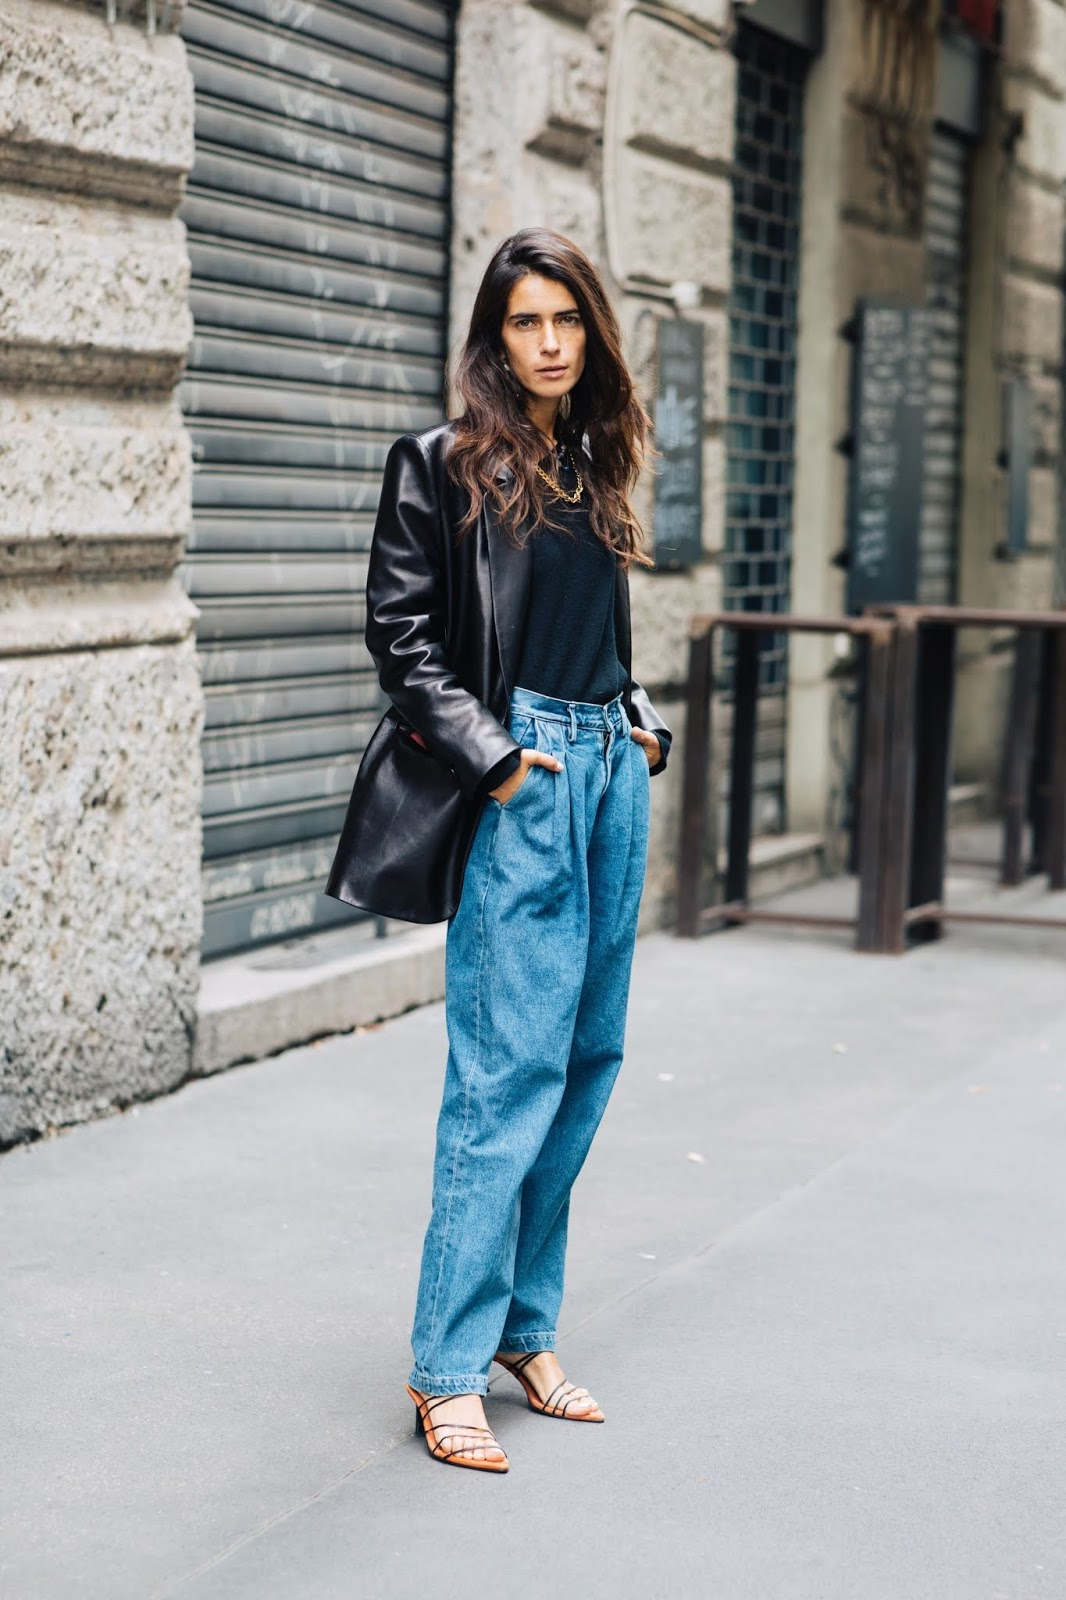 How to Wear 80s-Inspired Pleated Jeans — Street style outfit with black leather blazer, gold chain necklace, denim, and strappy sandals